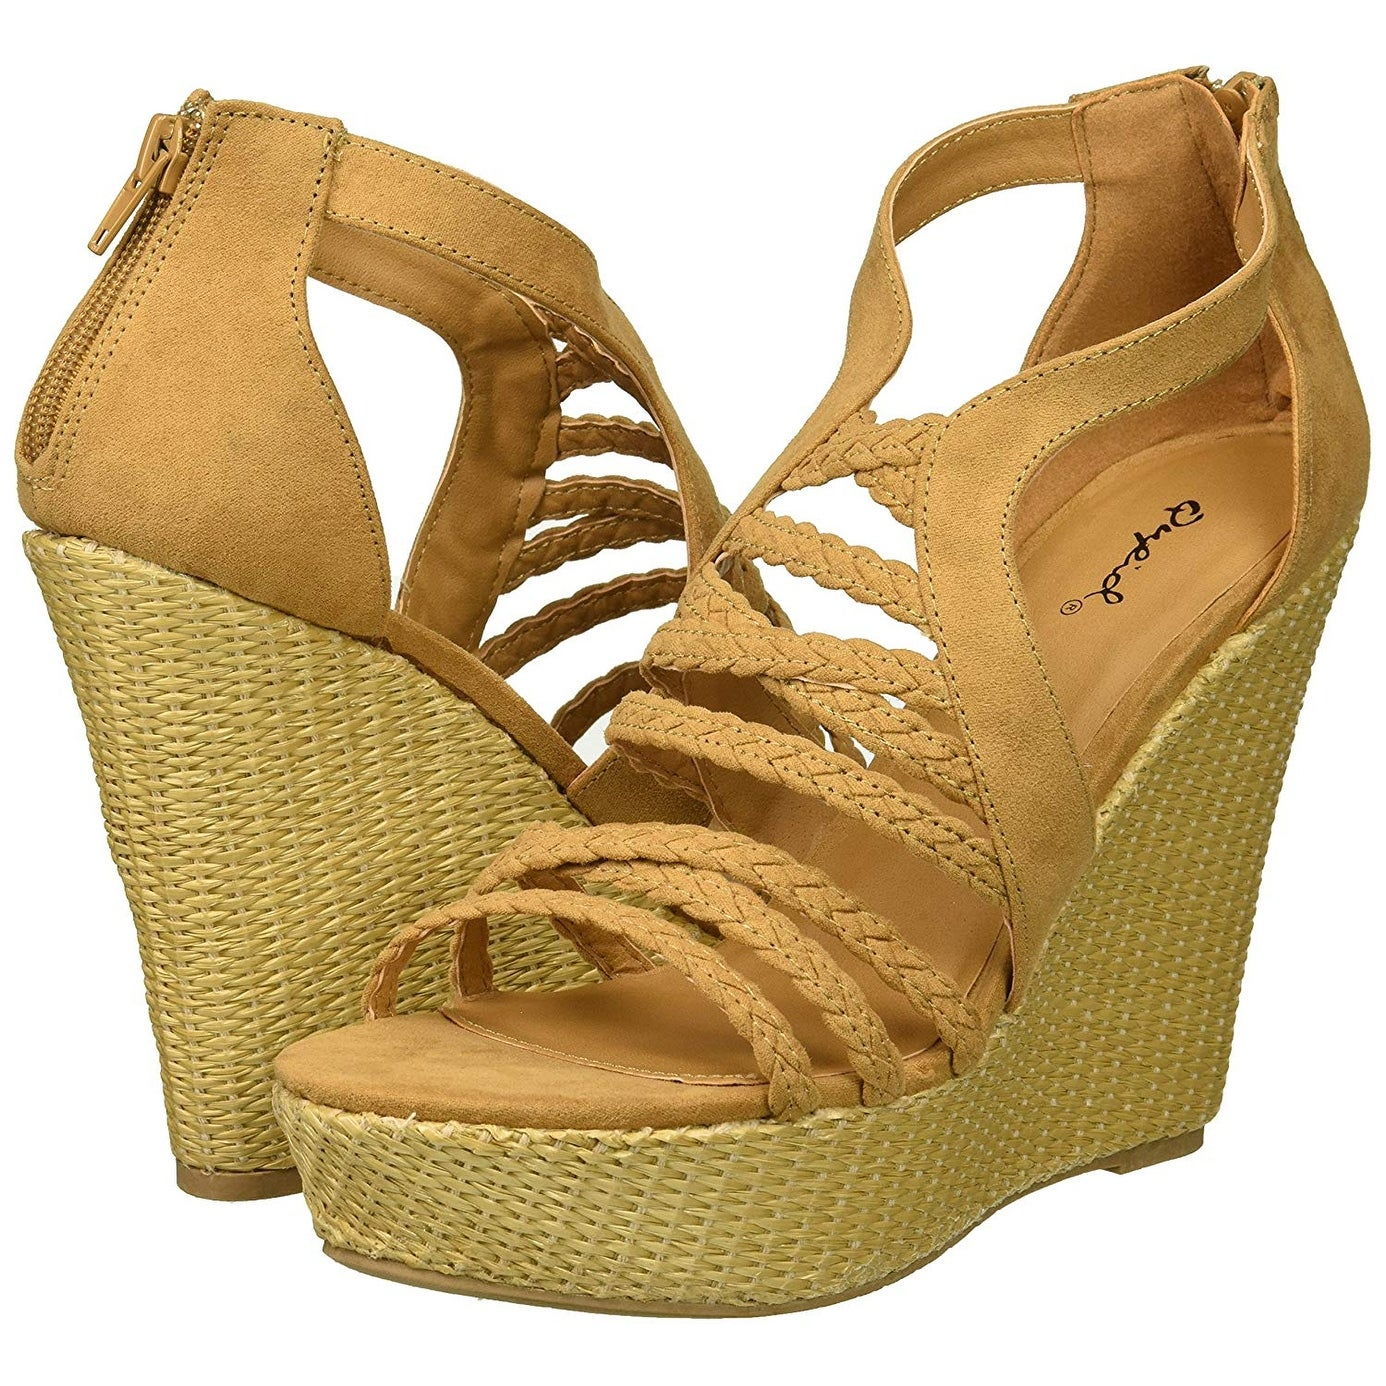 caf5054f5c8 Buy Qupid Women's Sandals Online at Overstock | Our Best Women's ...